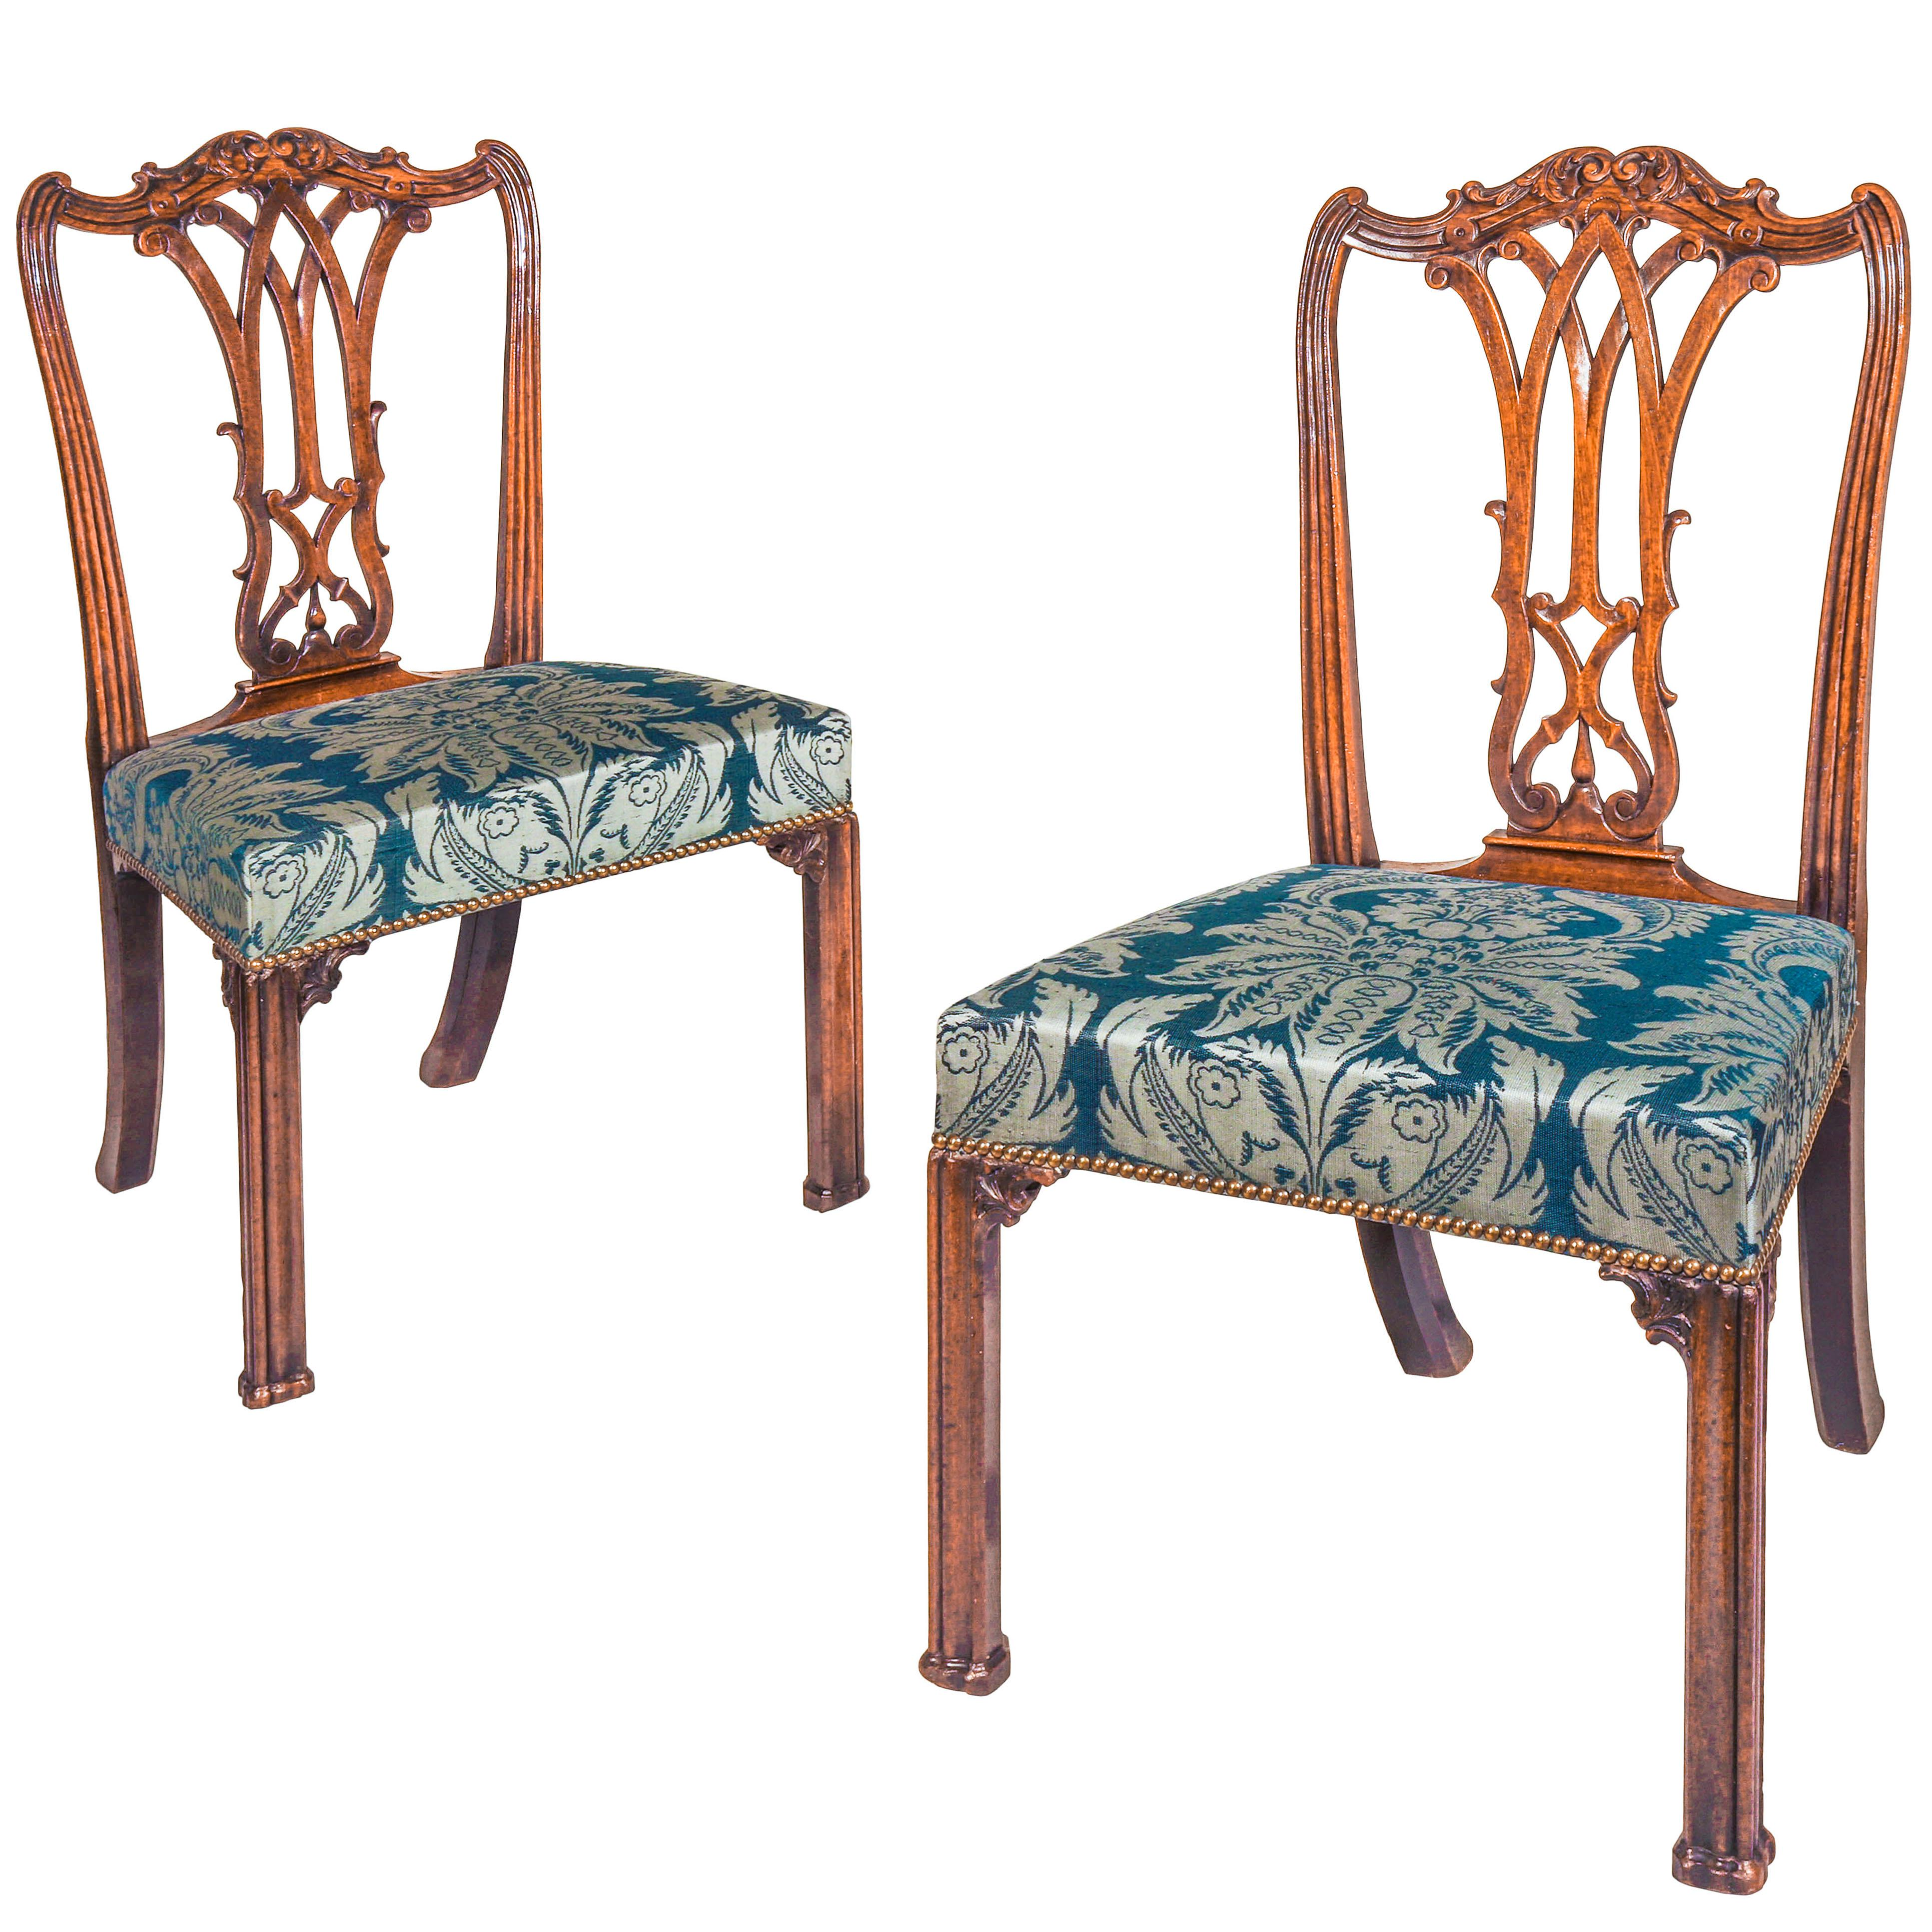 Pair Of 18th Century Chippendale Chairs For Sale At 1stdibs